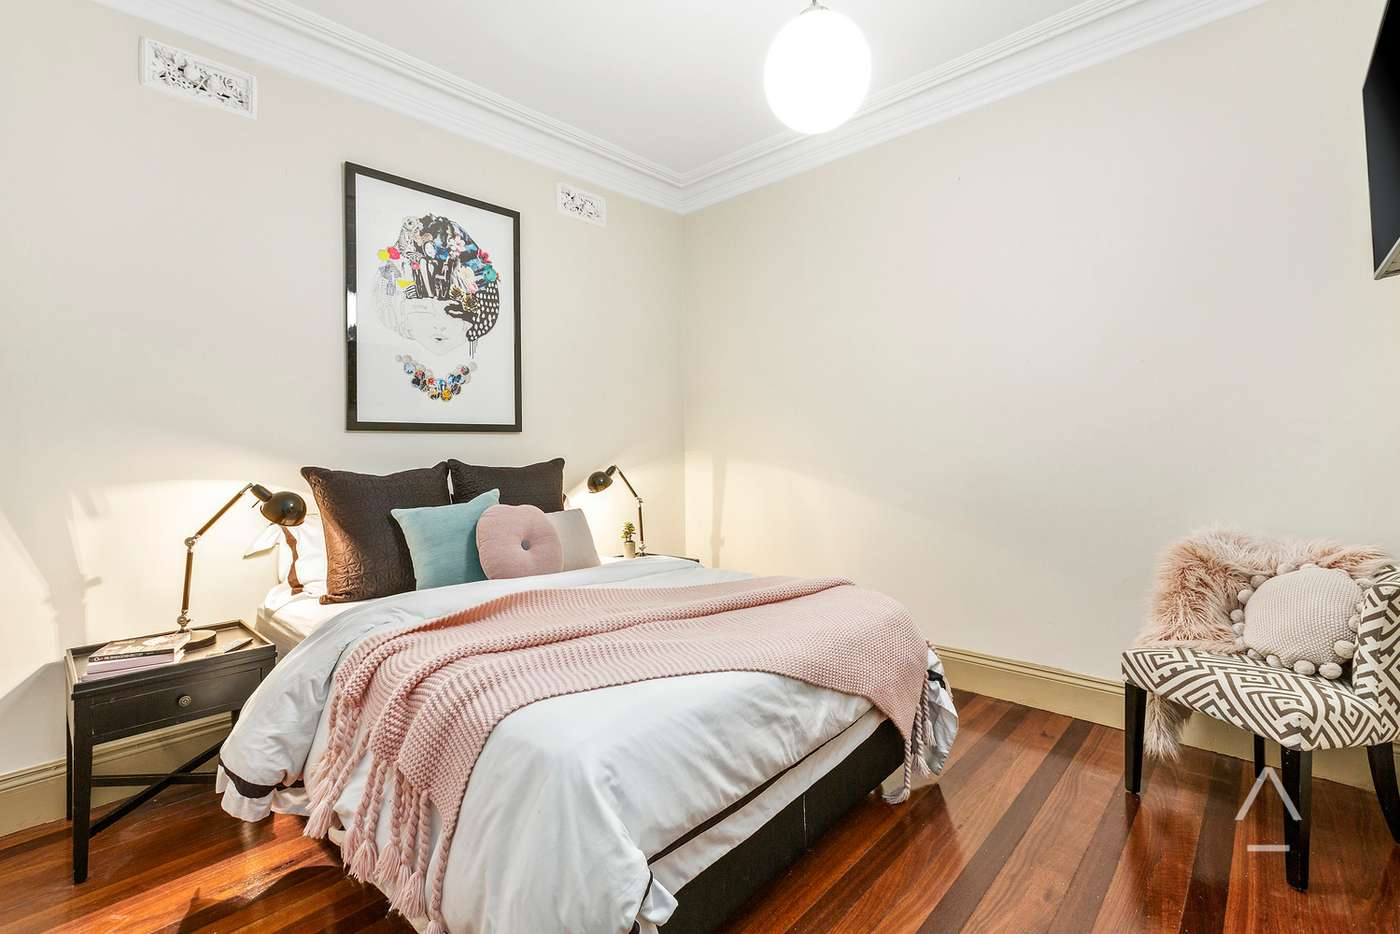 Fifth view of Homely house listing, 194 Clark Street, Port Melbourne VIC 3207